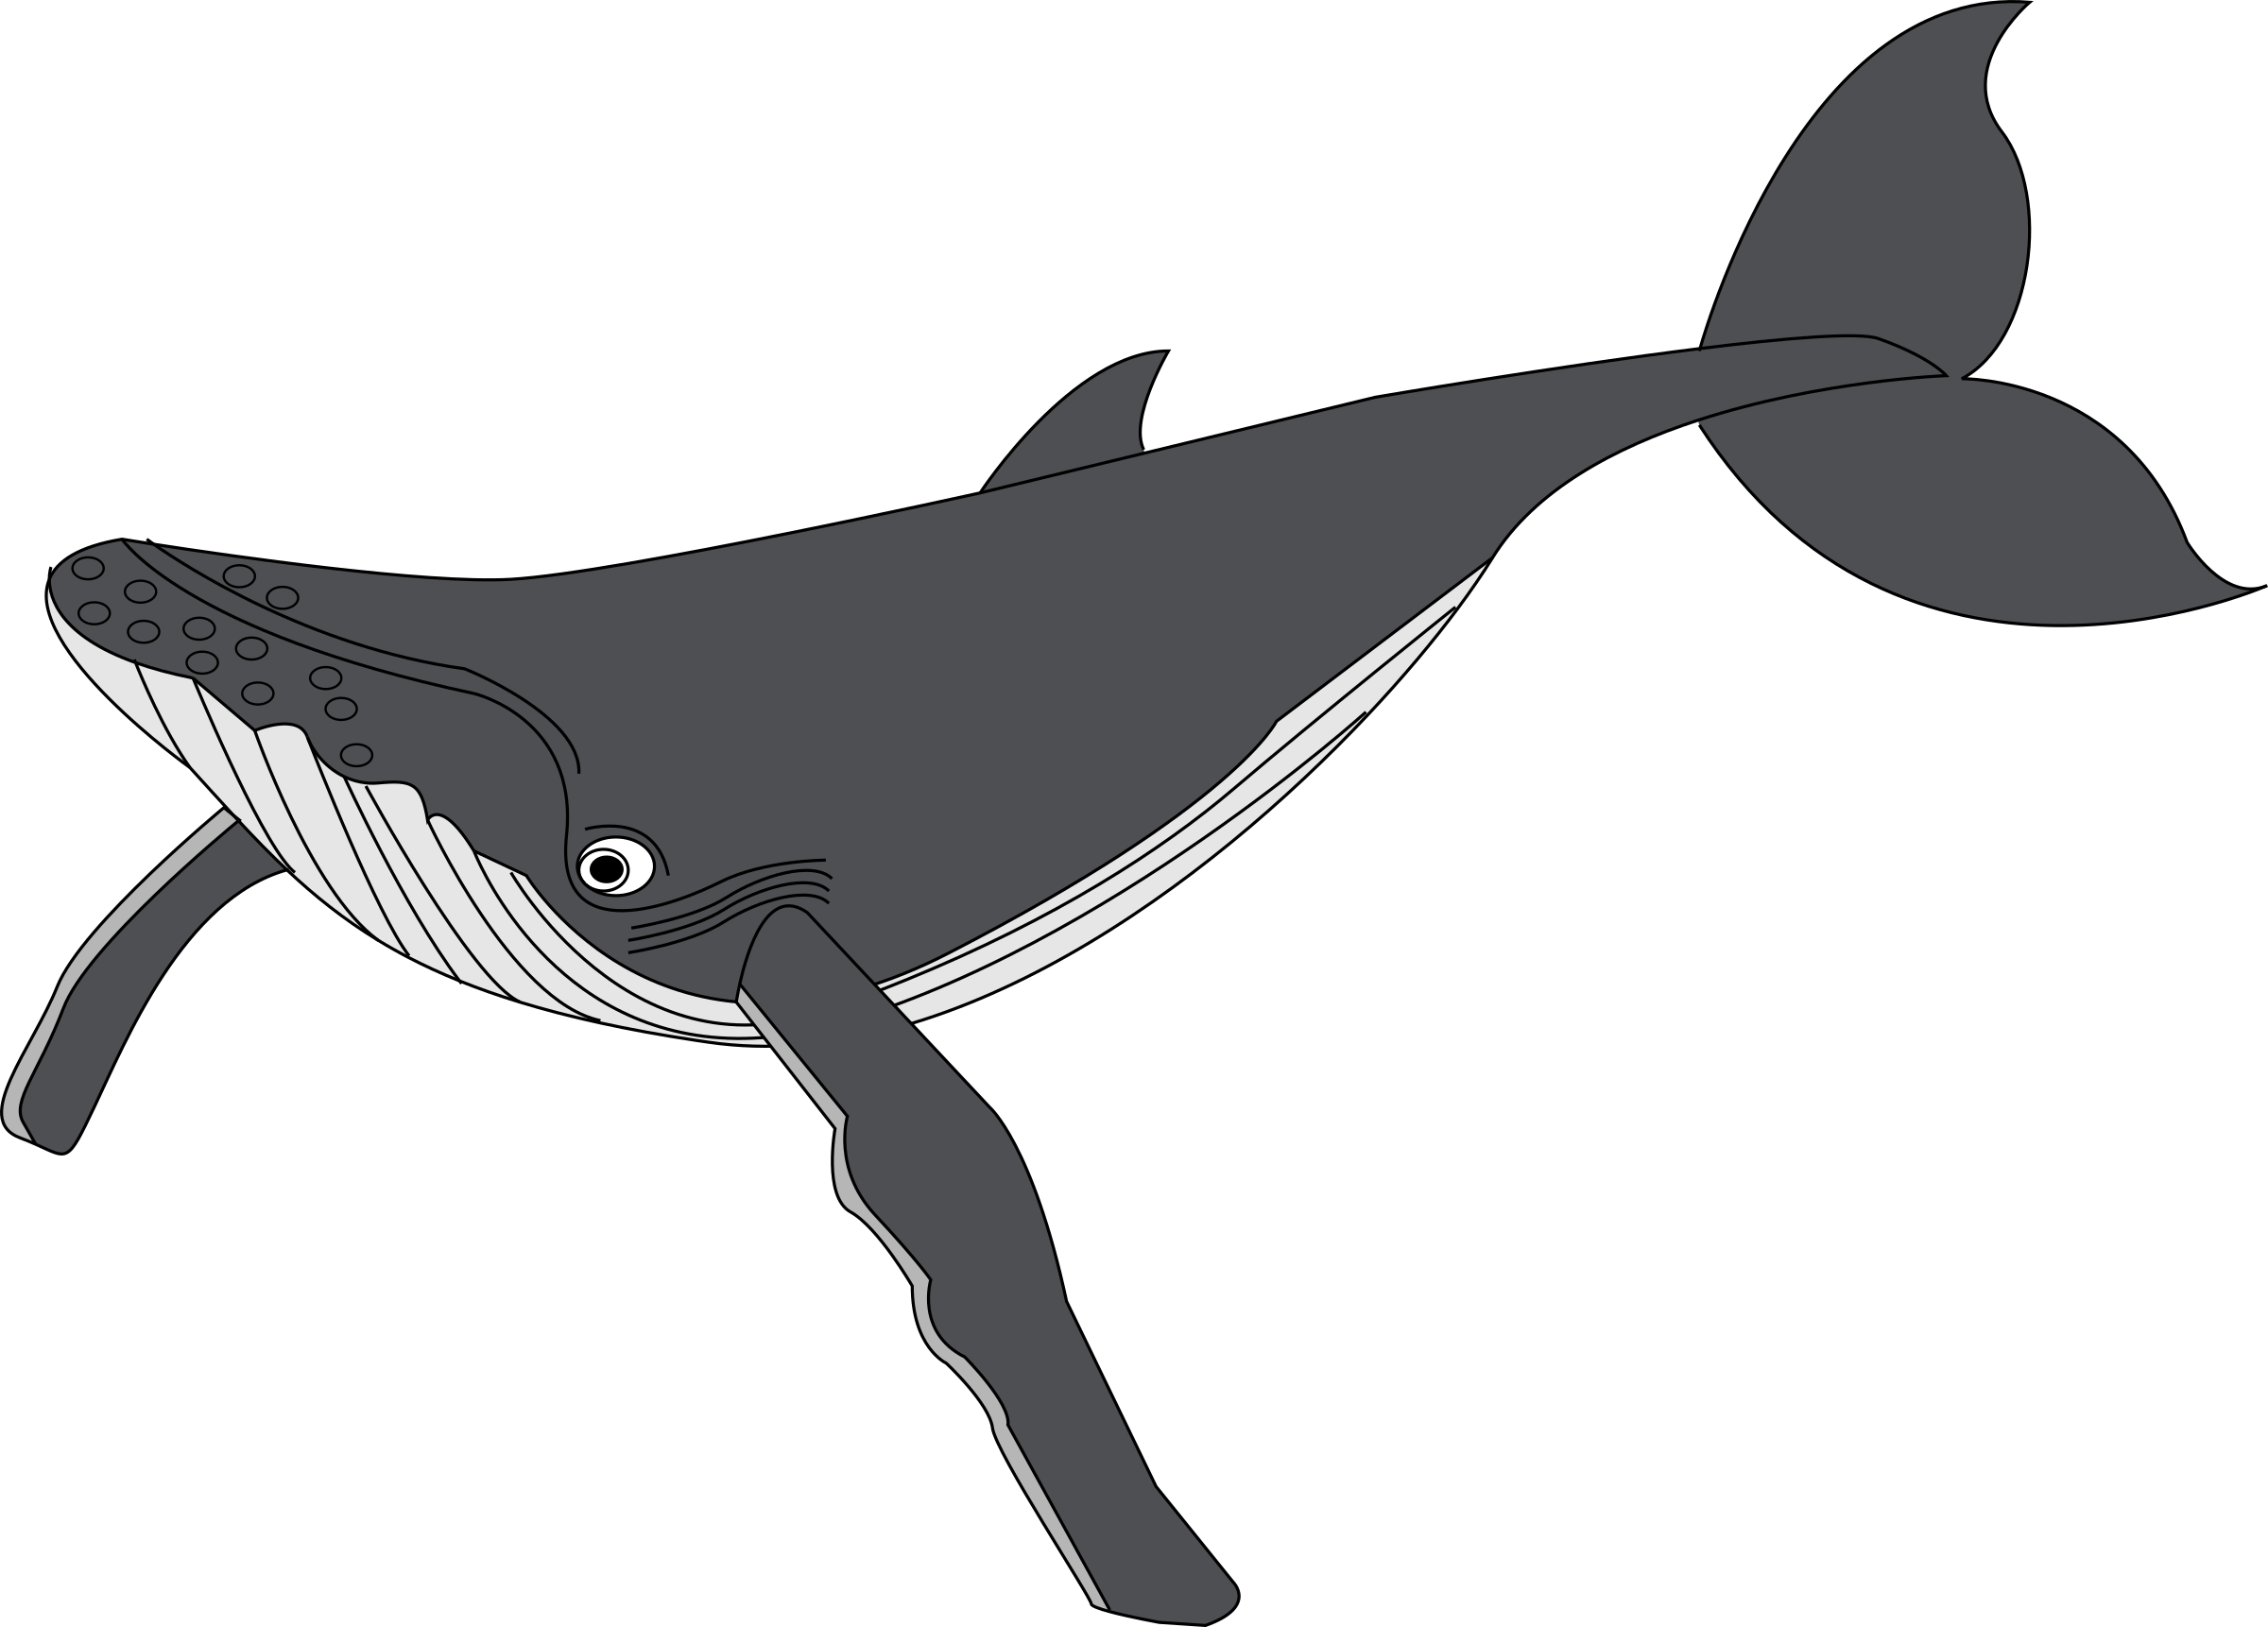 Baleine clipart #9, Download drawings